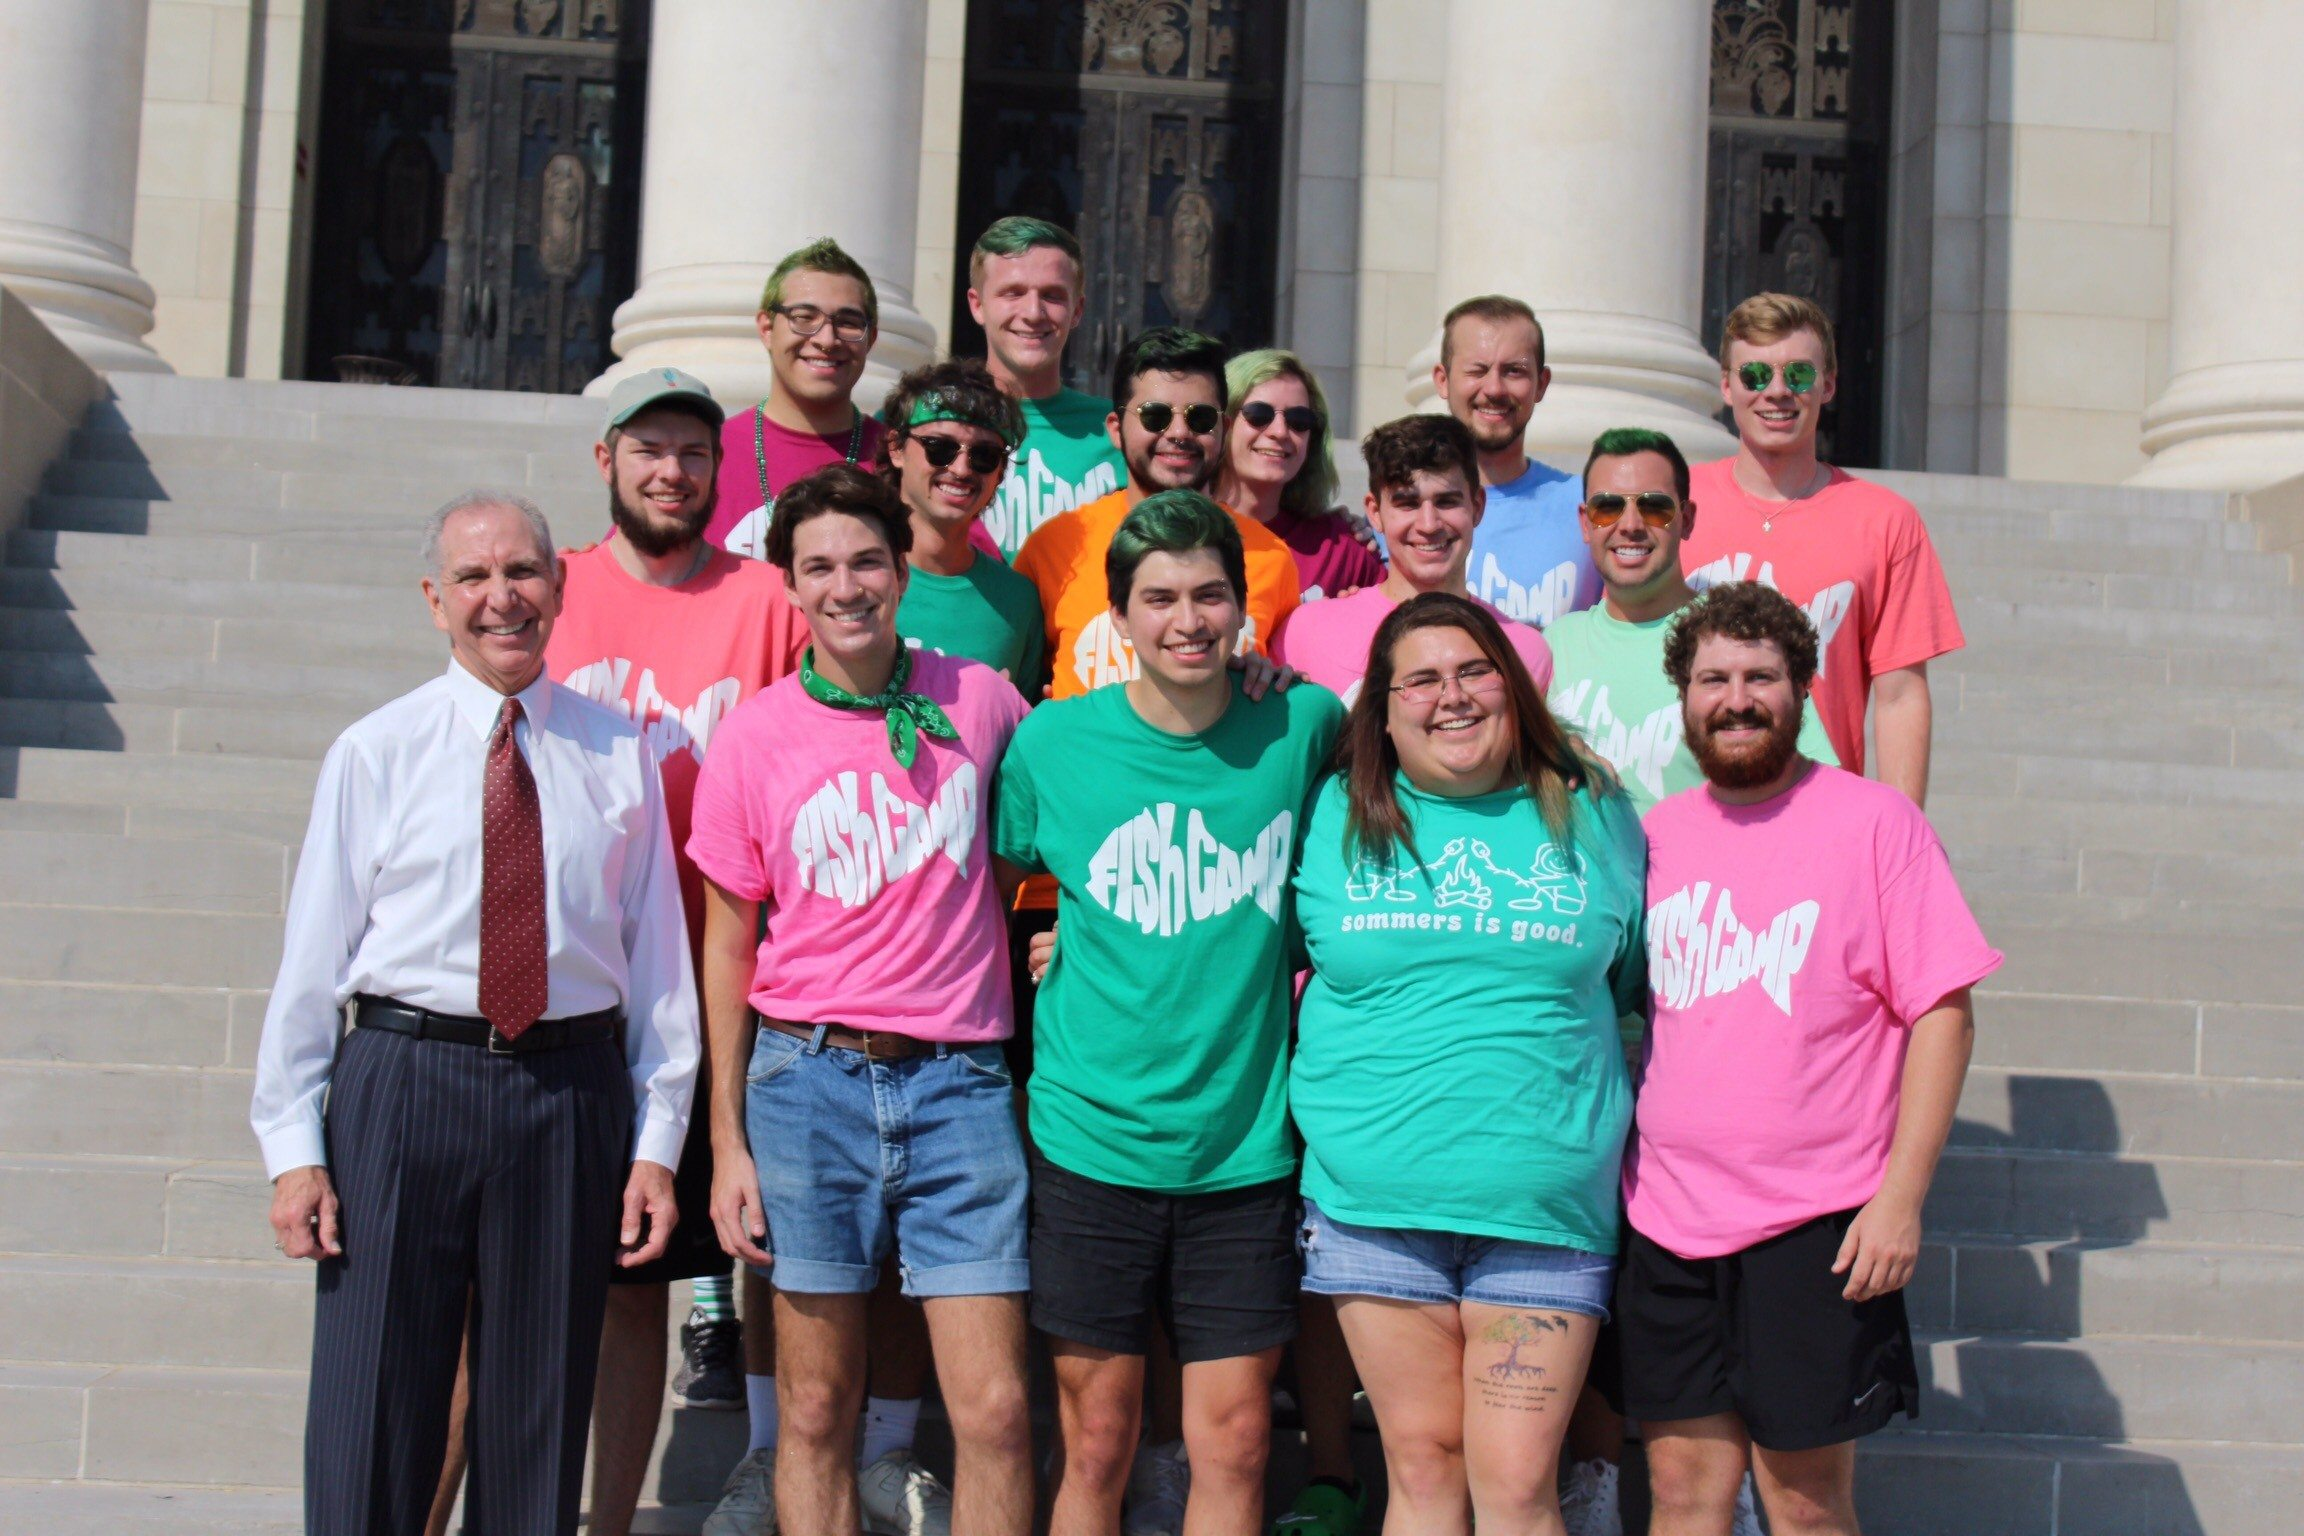 Texas A&M University President Michael K. Young visited a group of Fish Camp Counselors.